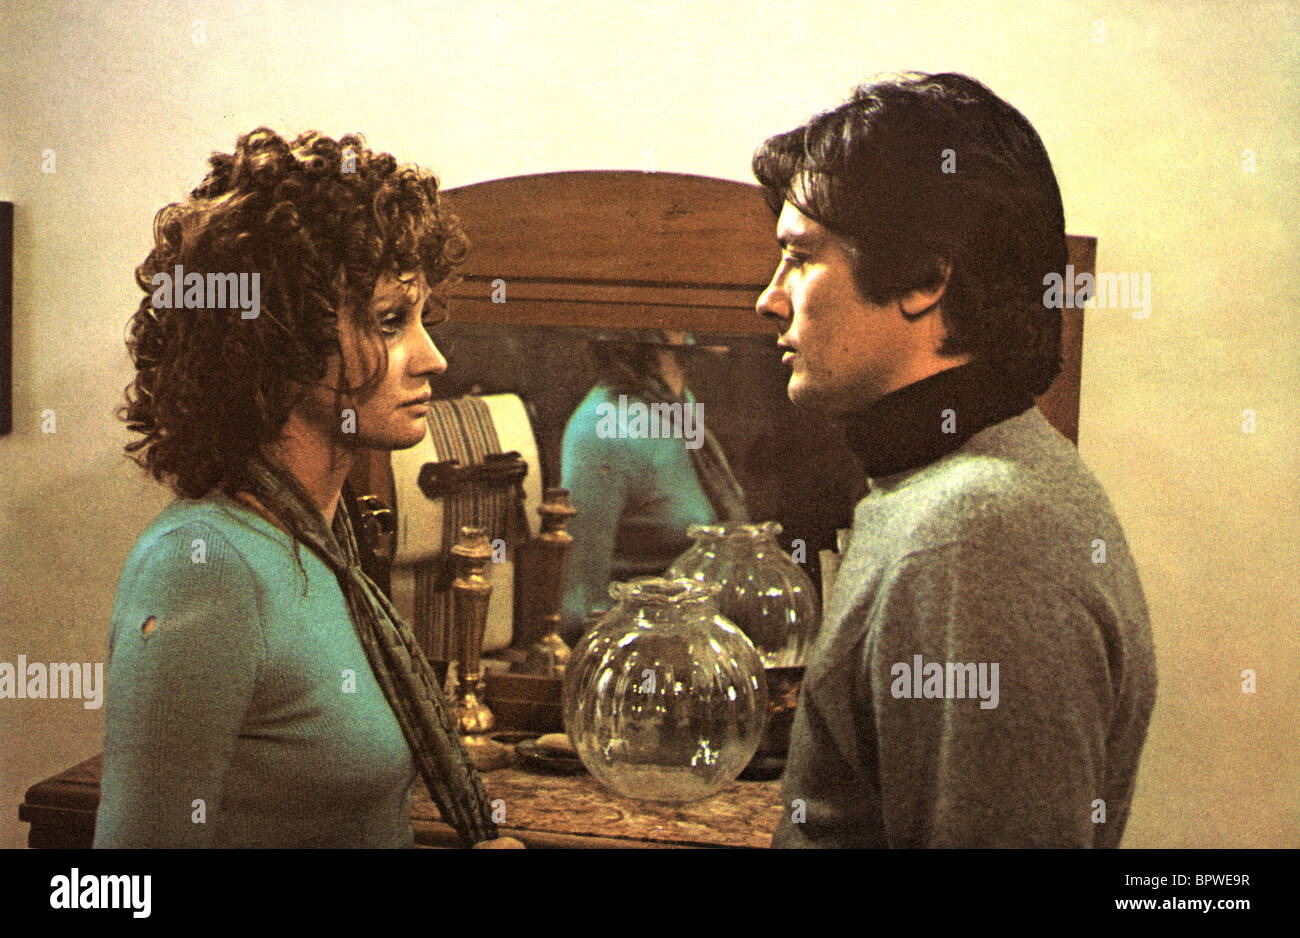 CARLA GRAVINA, ALAIN DELON, BIG GUNS - TONY ARZENTA, 1973 - Stock Image